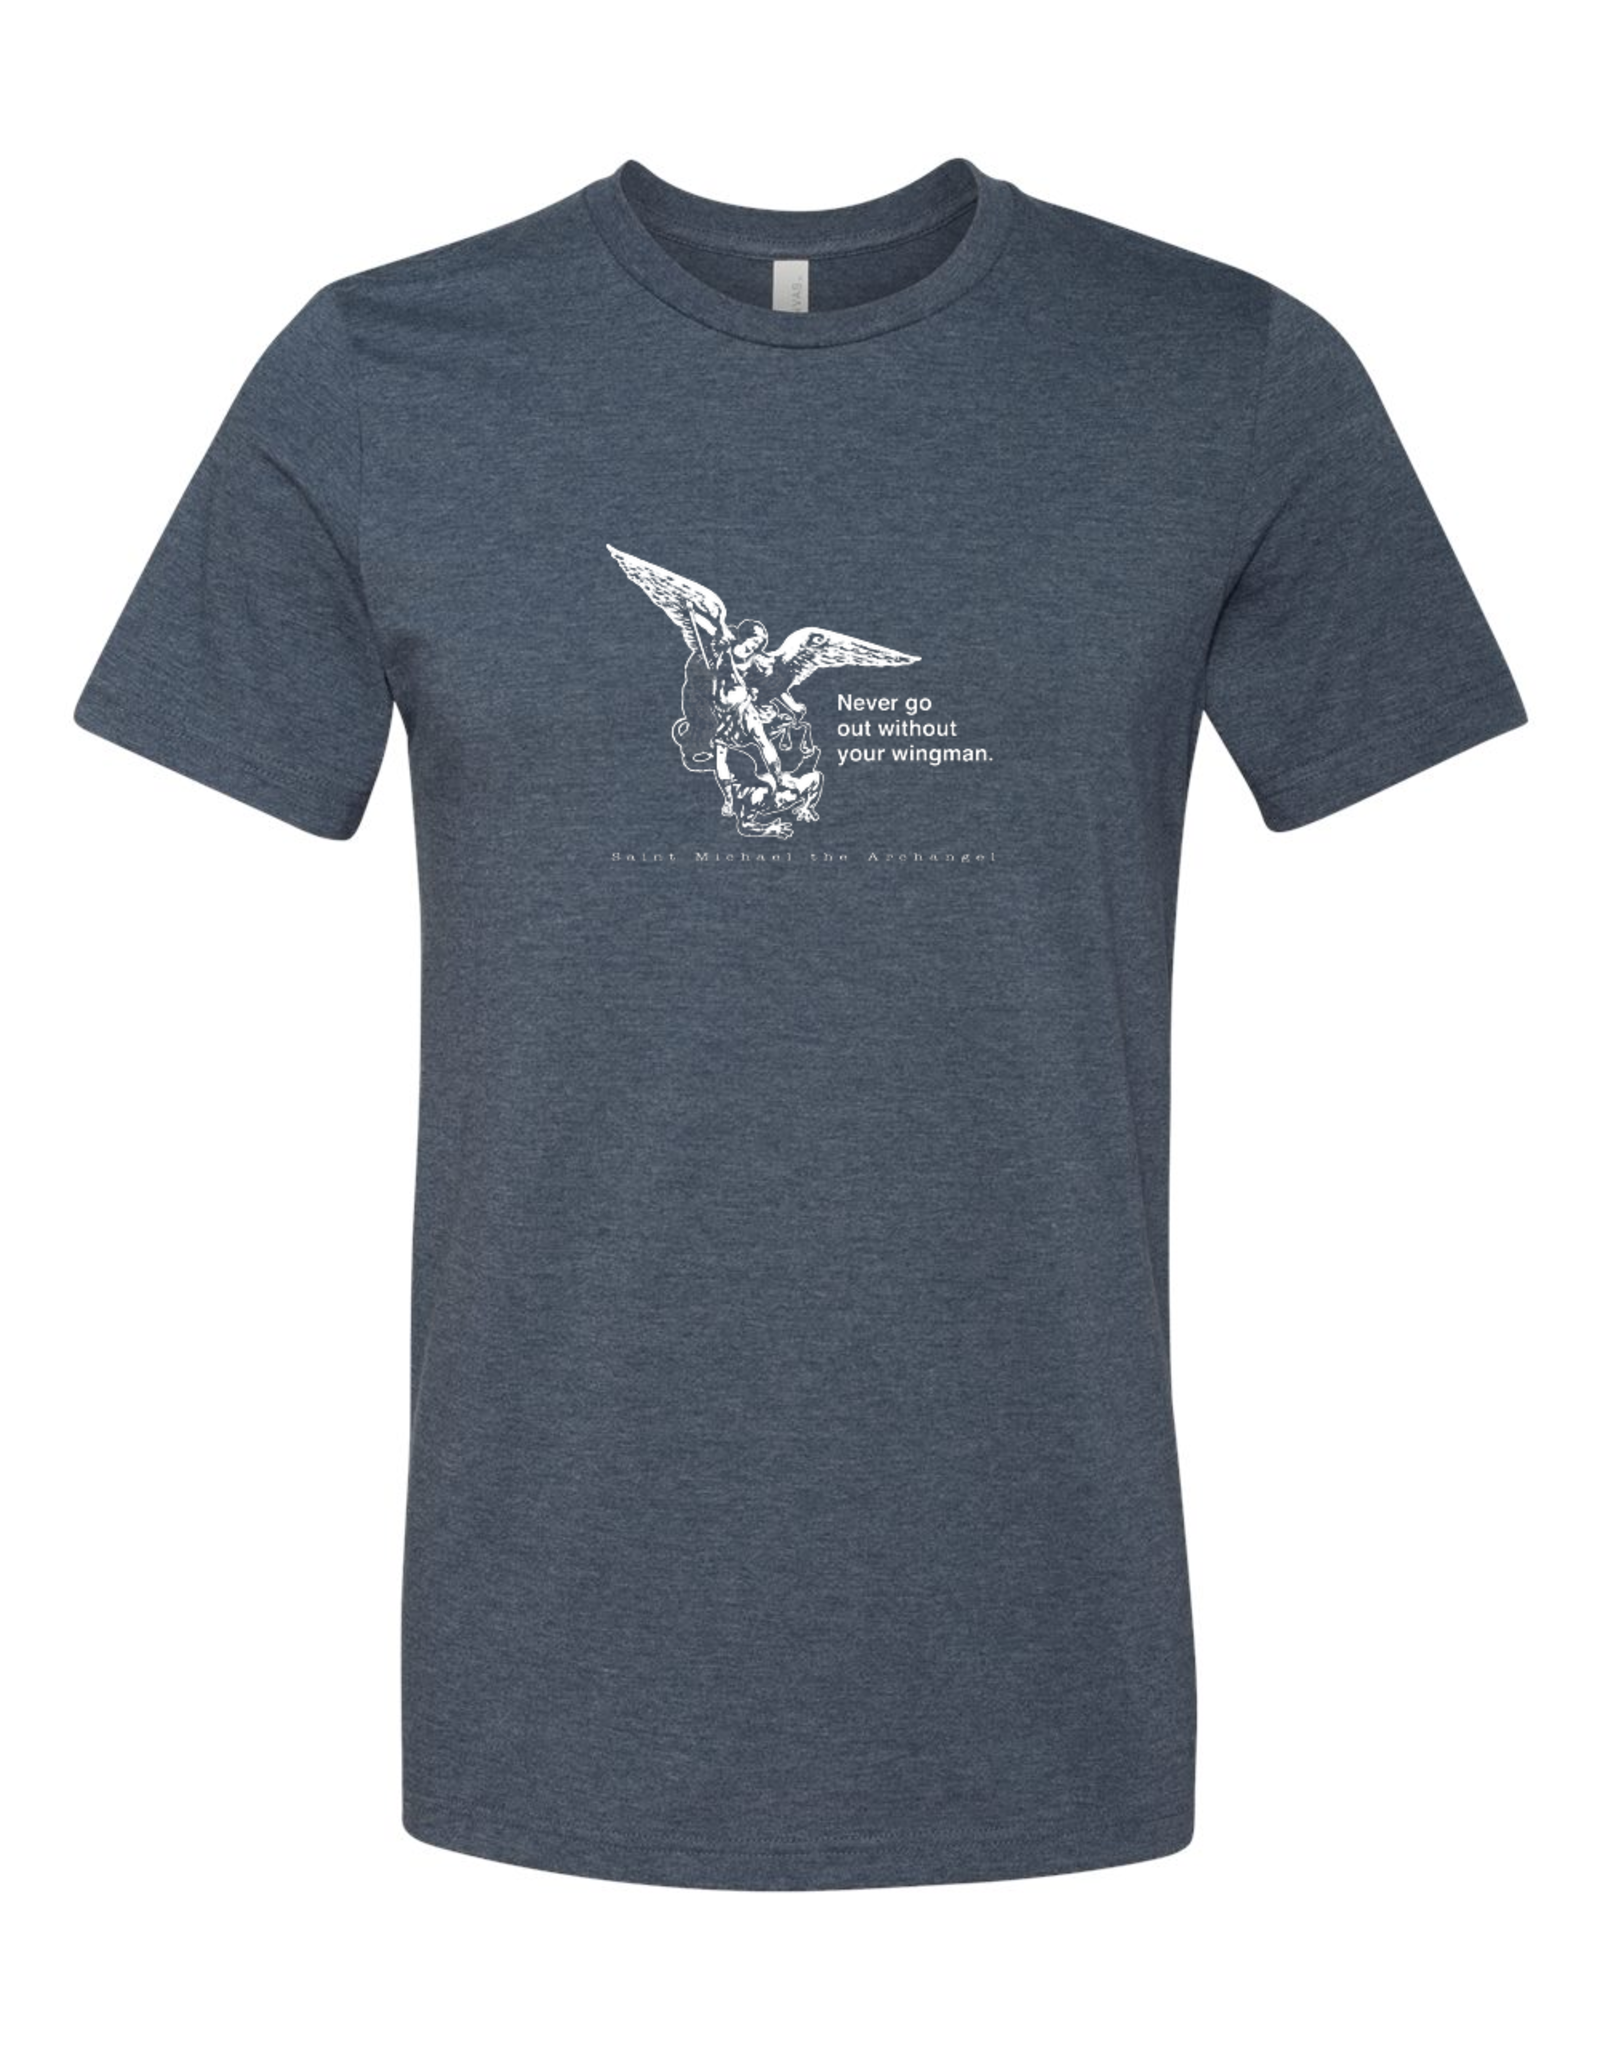 Sock Religious Never Go Without Your Wingman St. Michael the Archangel T-Shirt